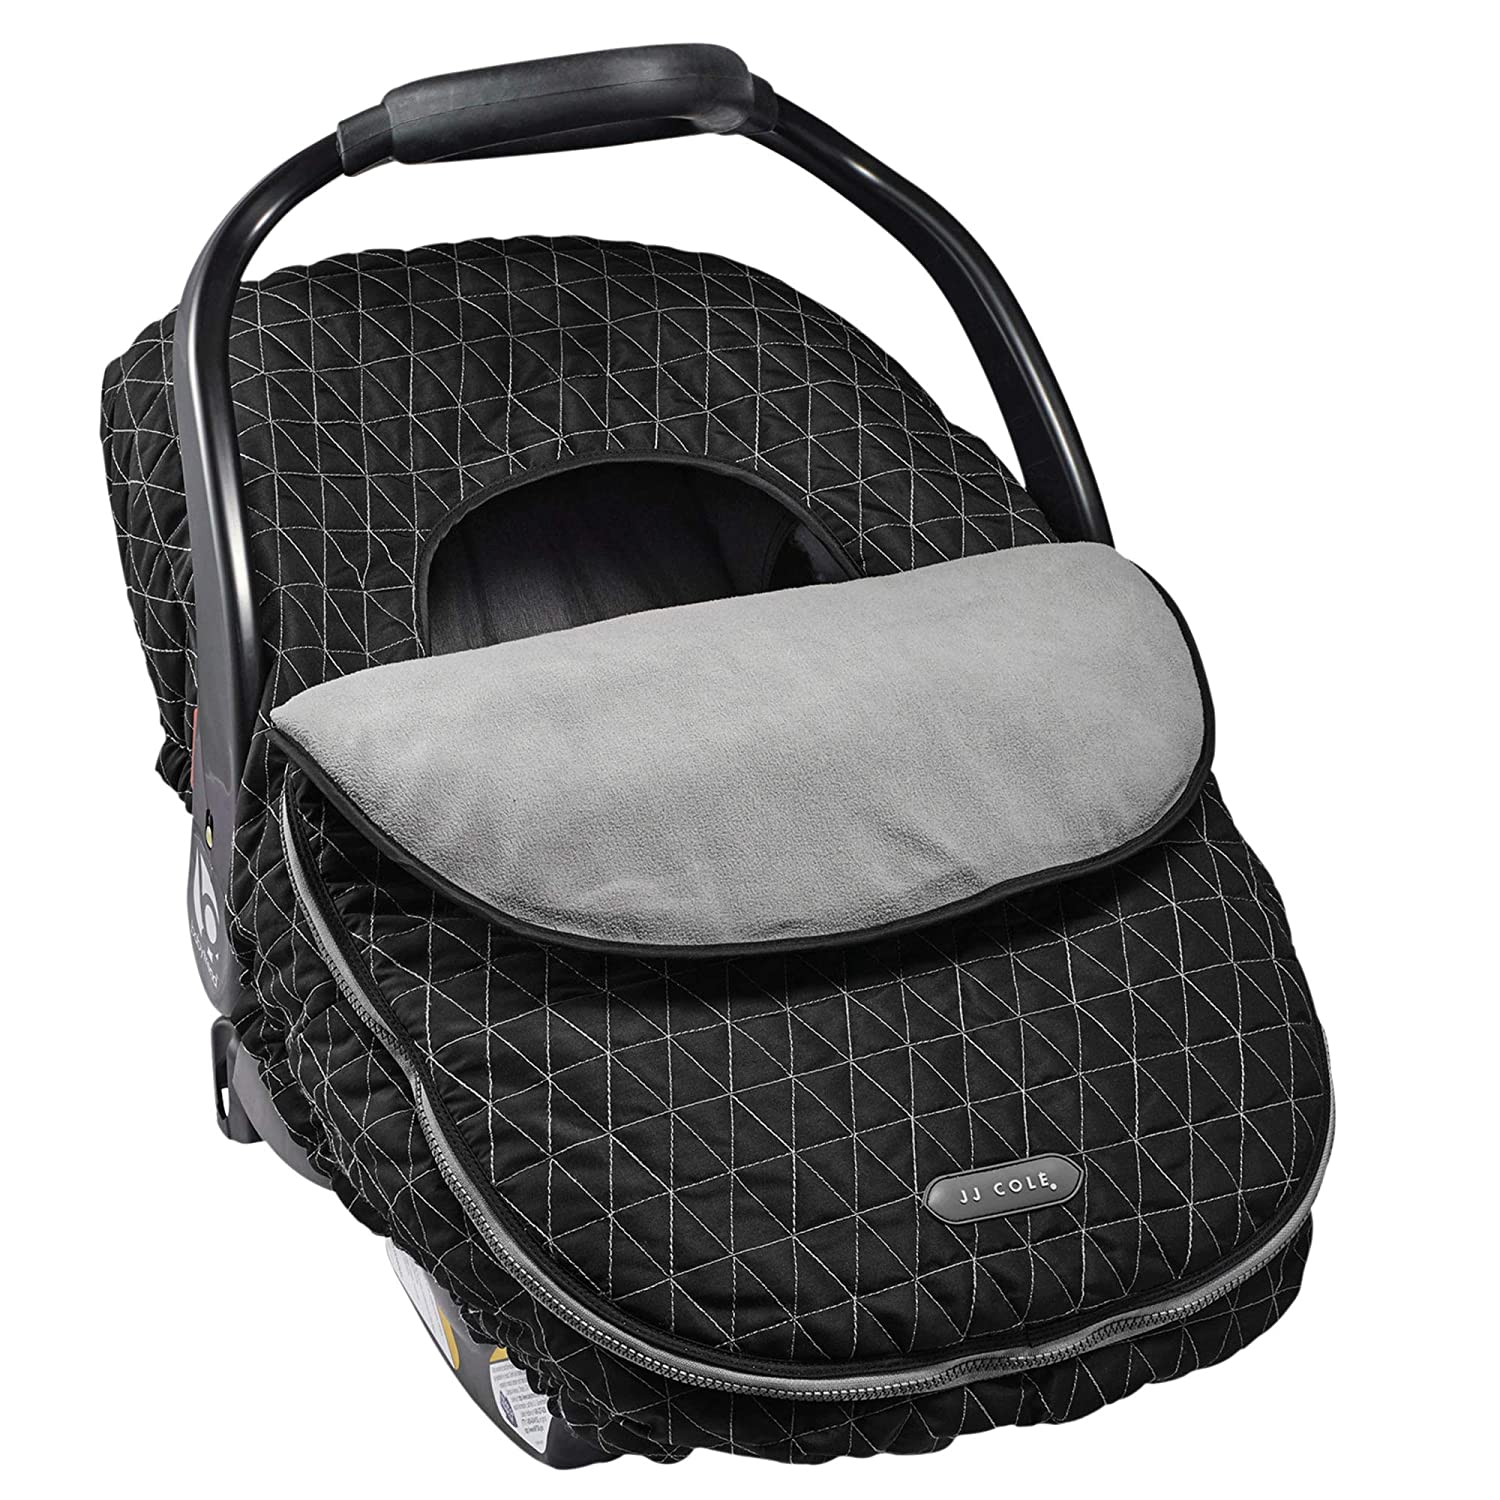 Cole – Car Seat Covers By JJ Image